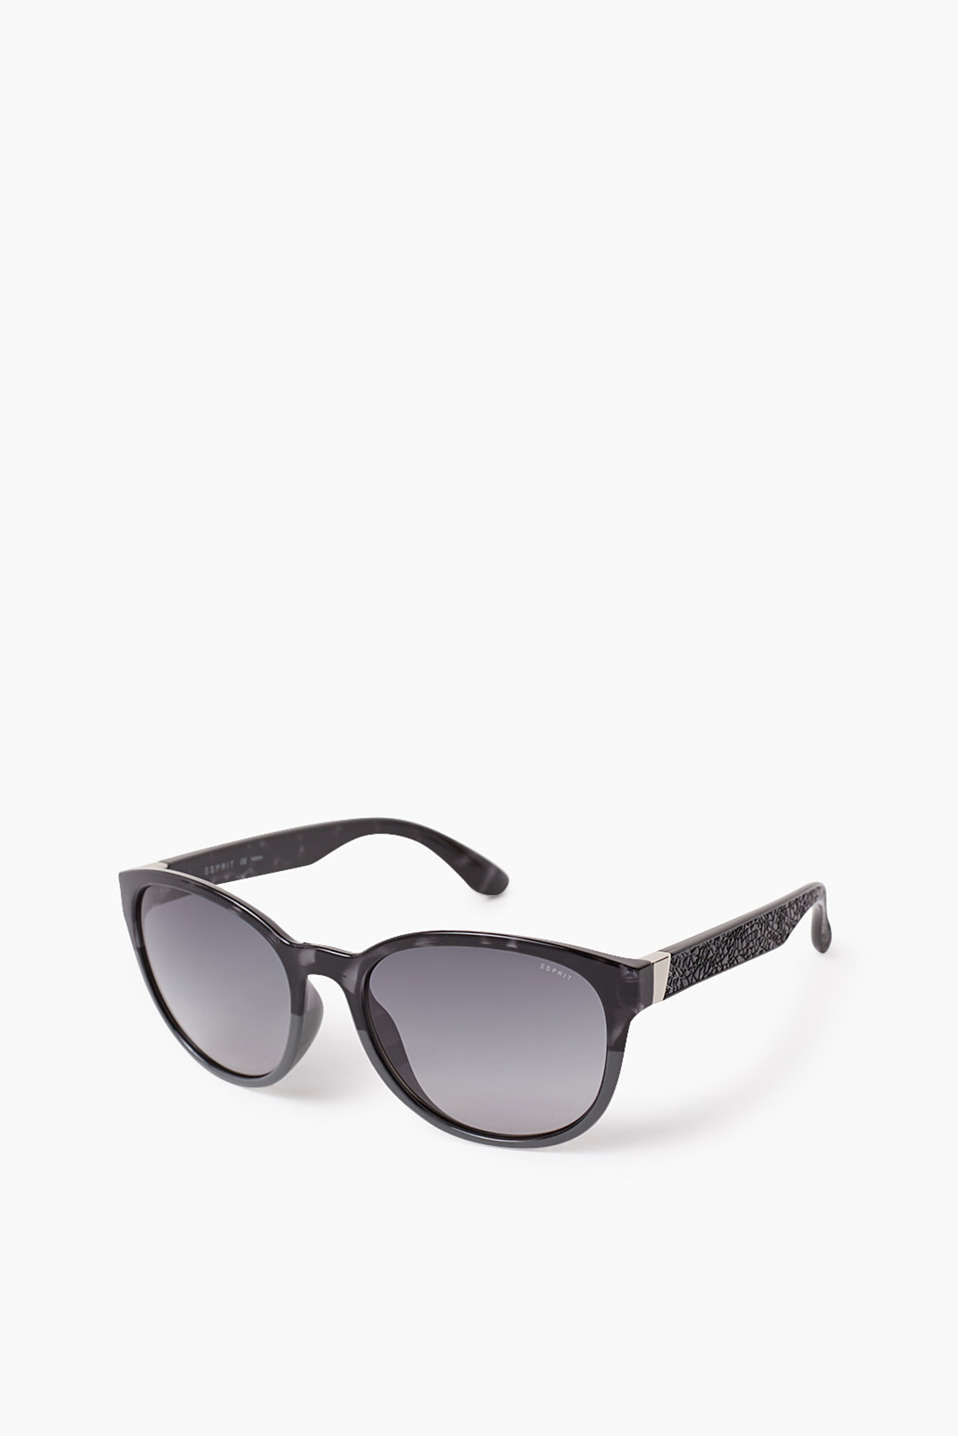 Bicolour plastic sunglasses, colour-graduated lenses